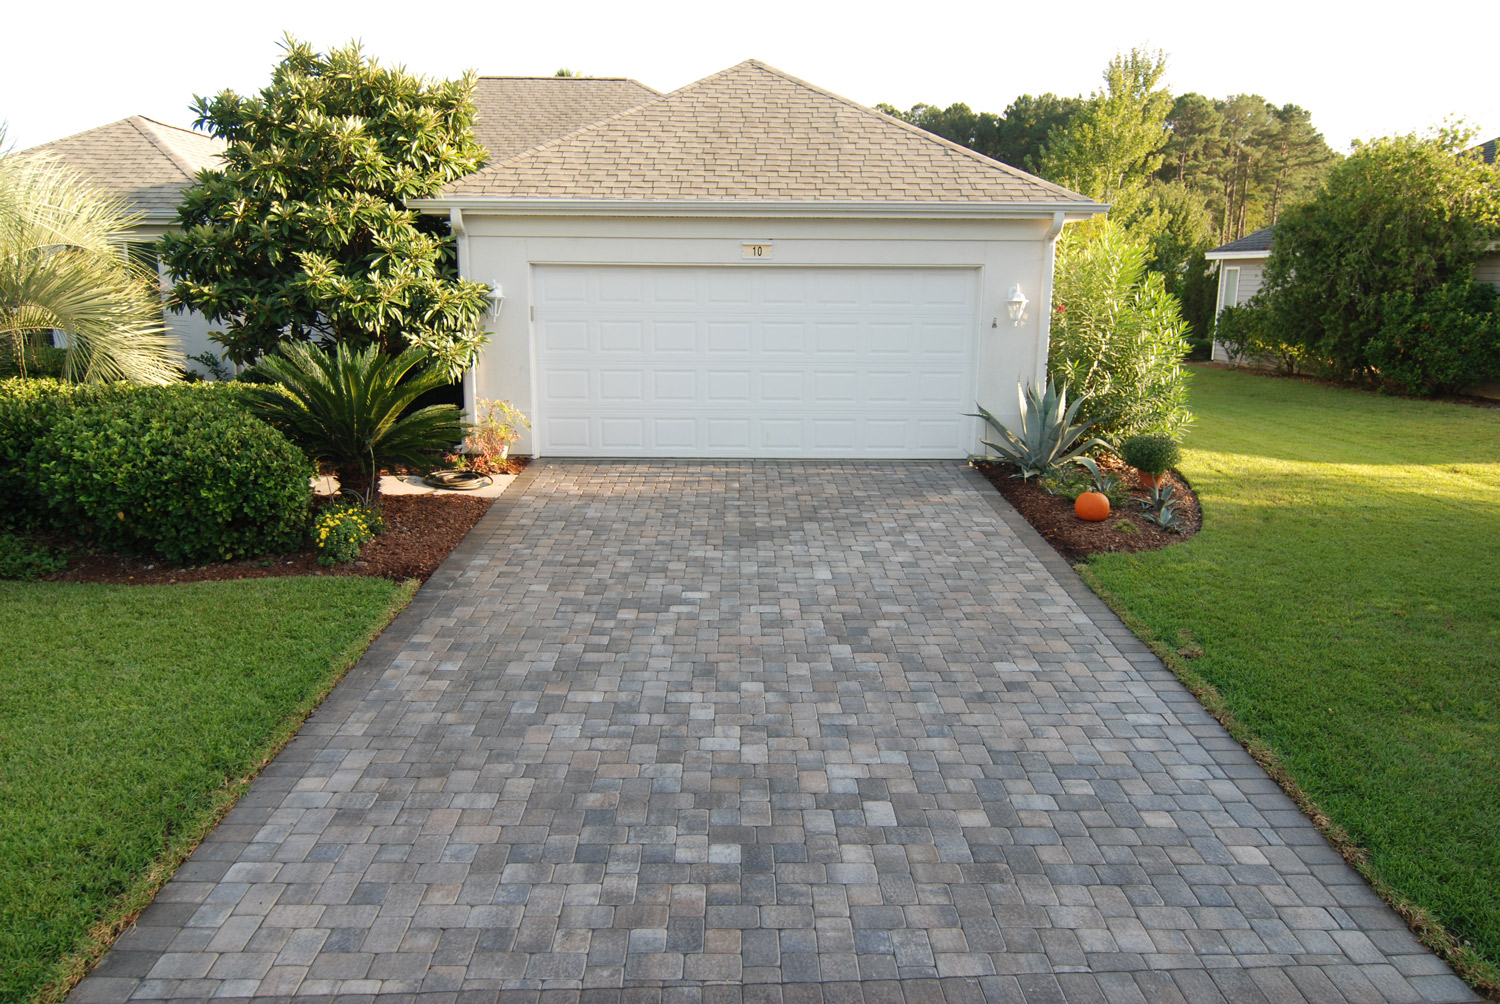 T-Pattern - The T-pattern is a pattern made up of two sizes, most commonly, a 6X6 and 6X9 paver. This pattern when laid creates an alternating T or I, depending on how you are viewing the pavers.